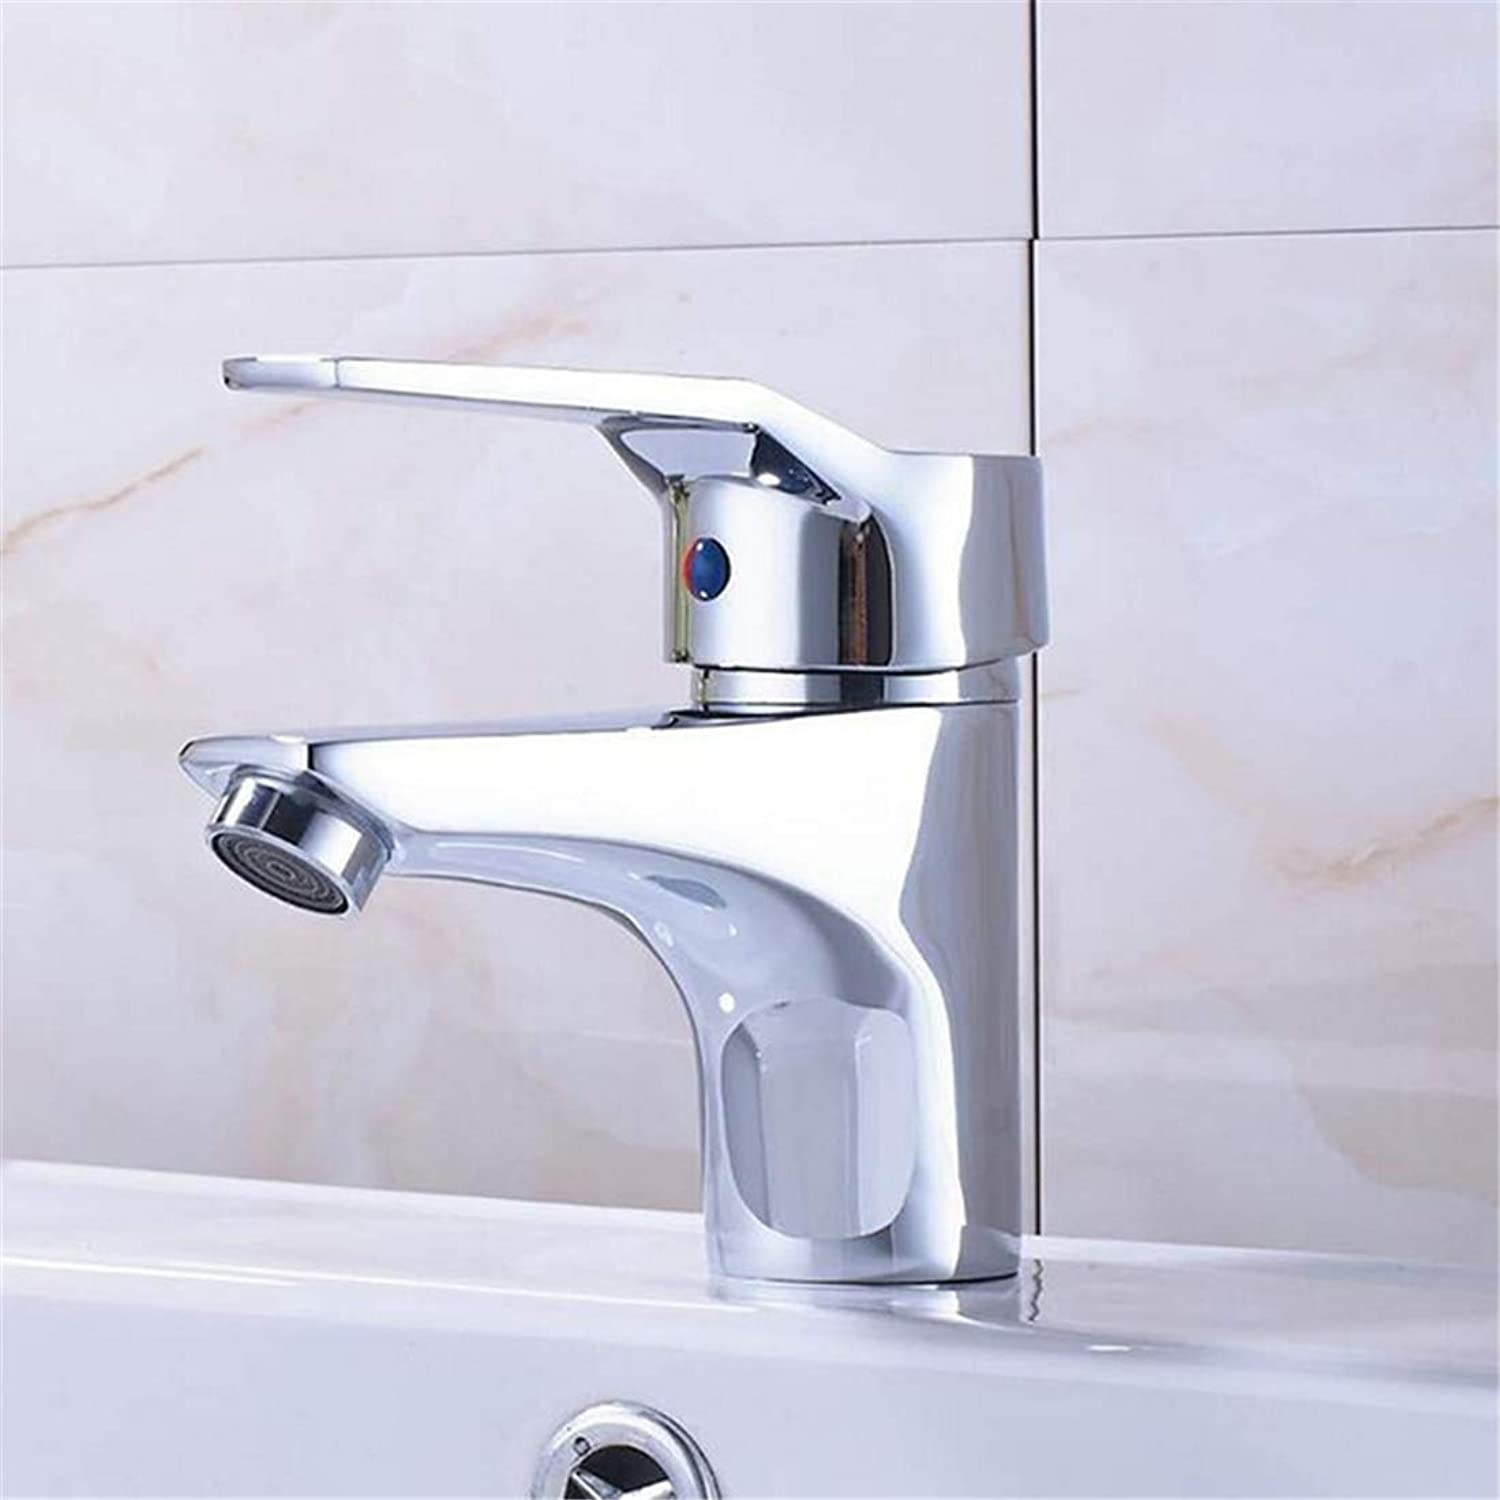 Retro Faucethot and Cold Water One Handle Hole Faucet Mixer Tap